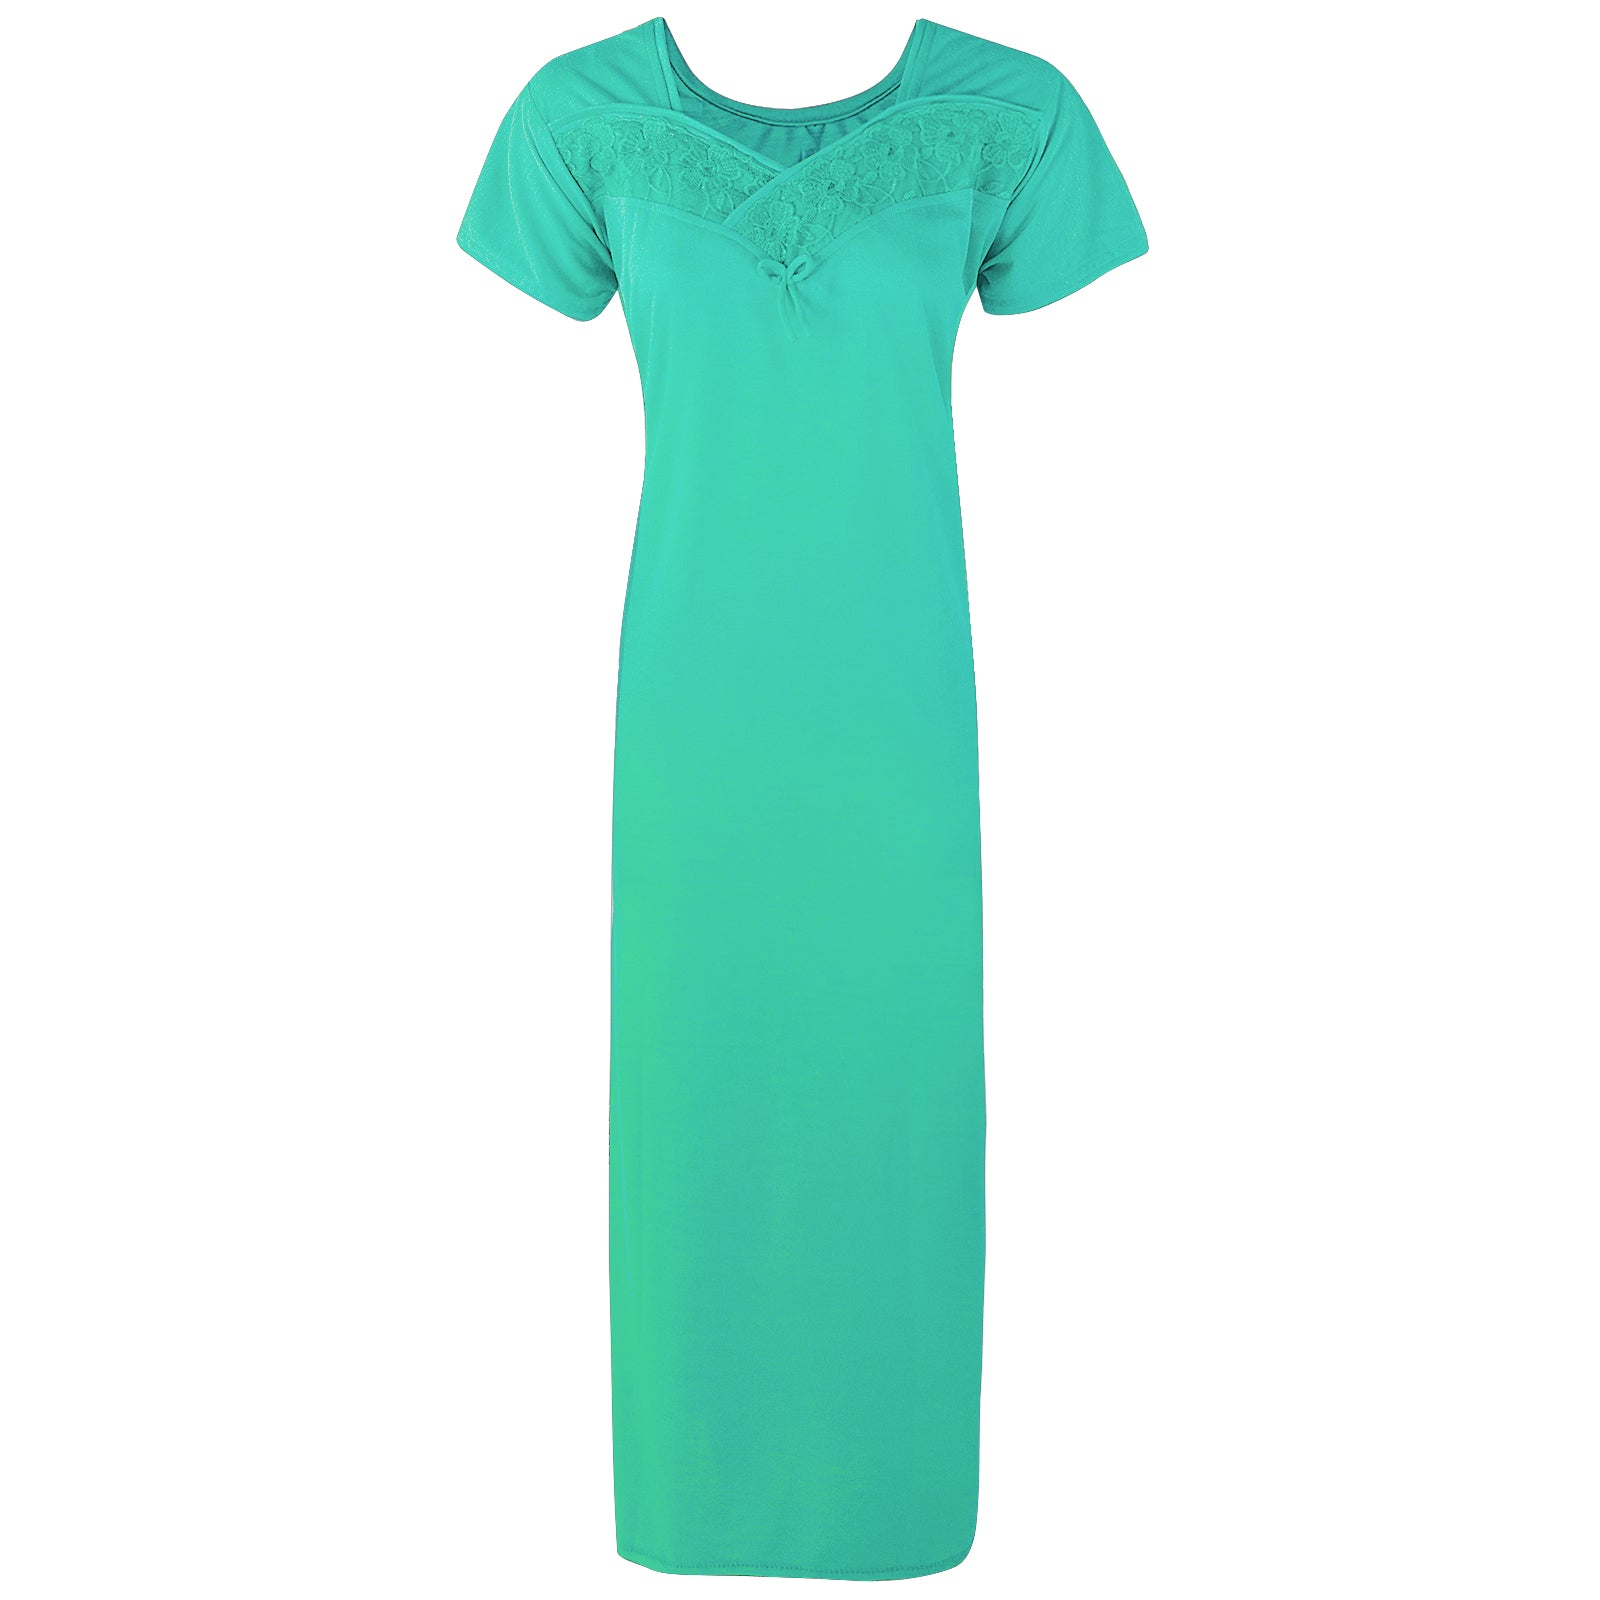 Colour: Teal Cotton Blend Comfy Jersey Nightdress Size: 12-16